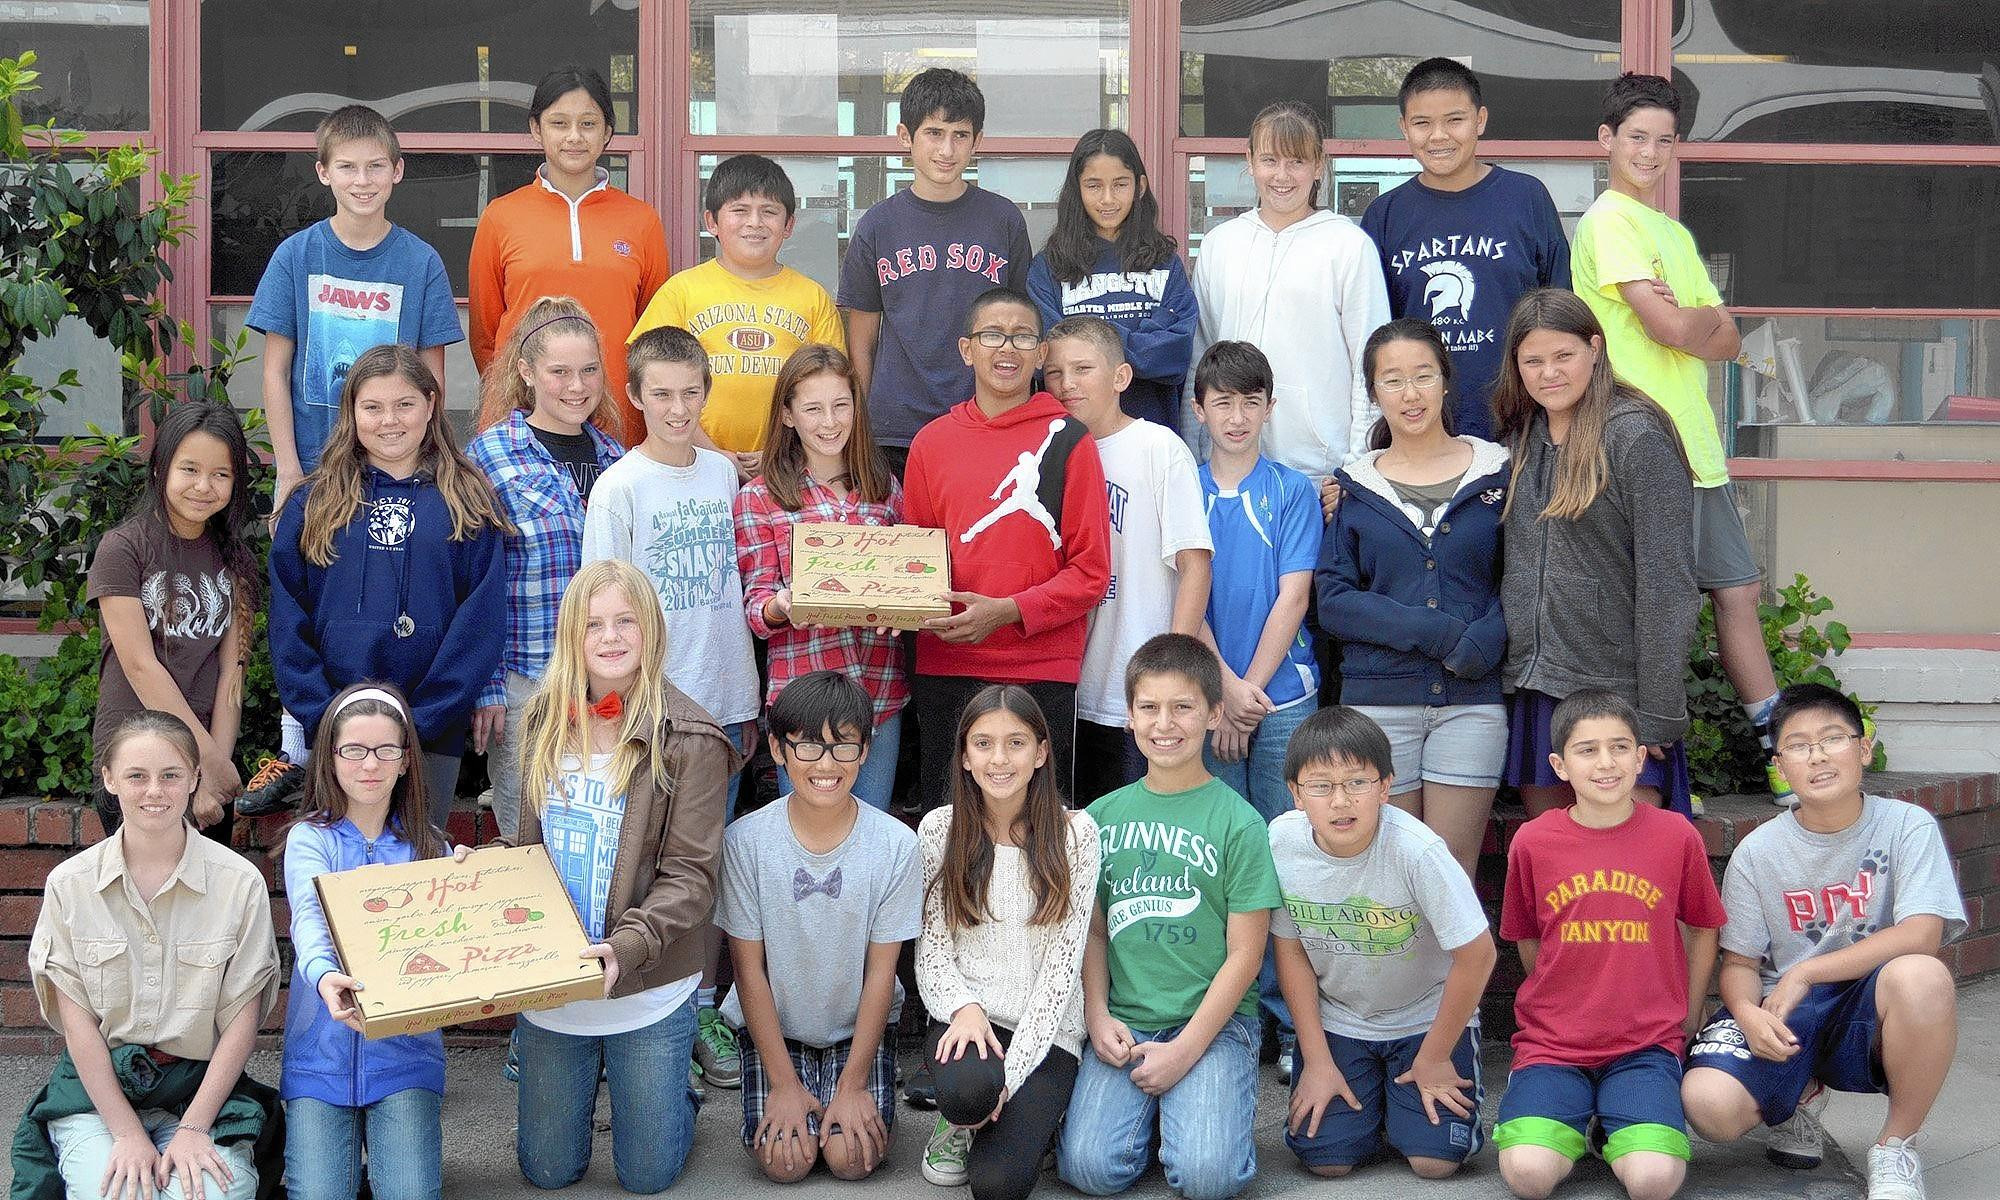 Mrs. Budde's sixth-grade class at Paradise Canyon Elementary School won the La Cañada Spring Home Tour contest by raising the most money for the Home Tour. They recently enjoyed a pizza party for their efforts. Back row, from left, Patrick Kalb, Elise Alvarez-Salazar, Luis Colon, Ryan Johnsen, Sonia Bhaskaran, Ciana Smyth, Max Fan and Liam Hartman; middle row, from left, Tigerlily Biskup, Juliette Arcaris, Katya Besch, Kirk Fungo, Caroline Dick, Andre Henry, Noah Hanes, Ben Griffith, Mindy Lee and Eve Branda; front row, from left, Sarah Aparicio, Lucia Borras, Brooke Steele, Kai Chavez, Ethan Cohen, Brandon Kim, Devin Sagarian and Cyrus Chen.